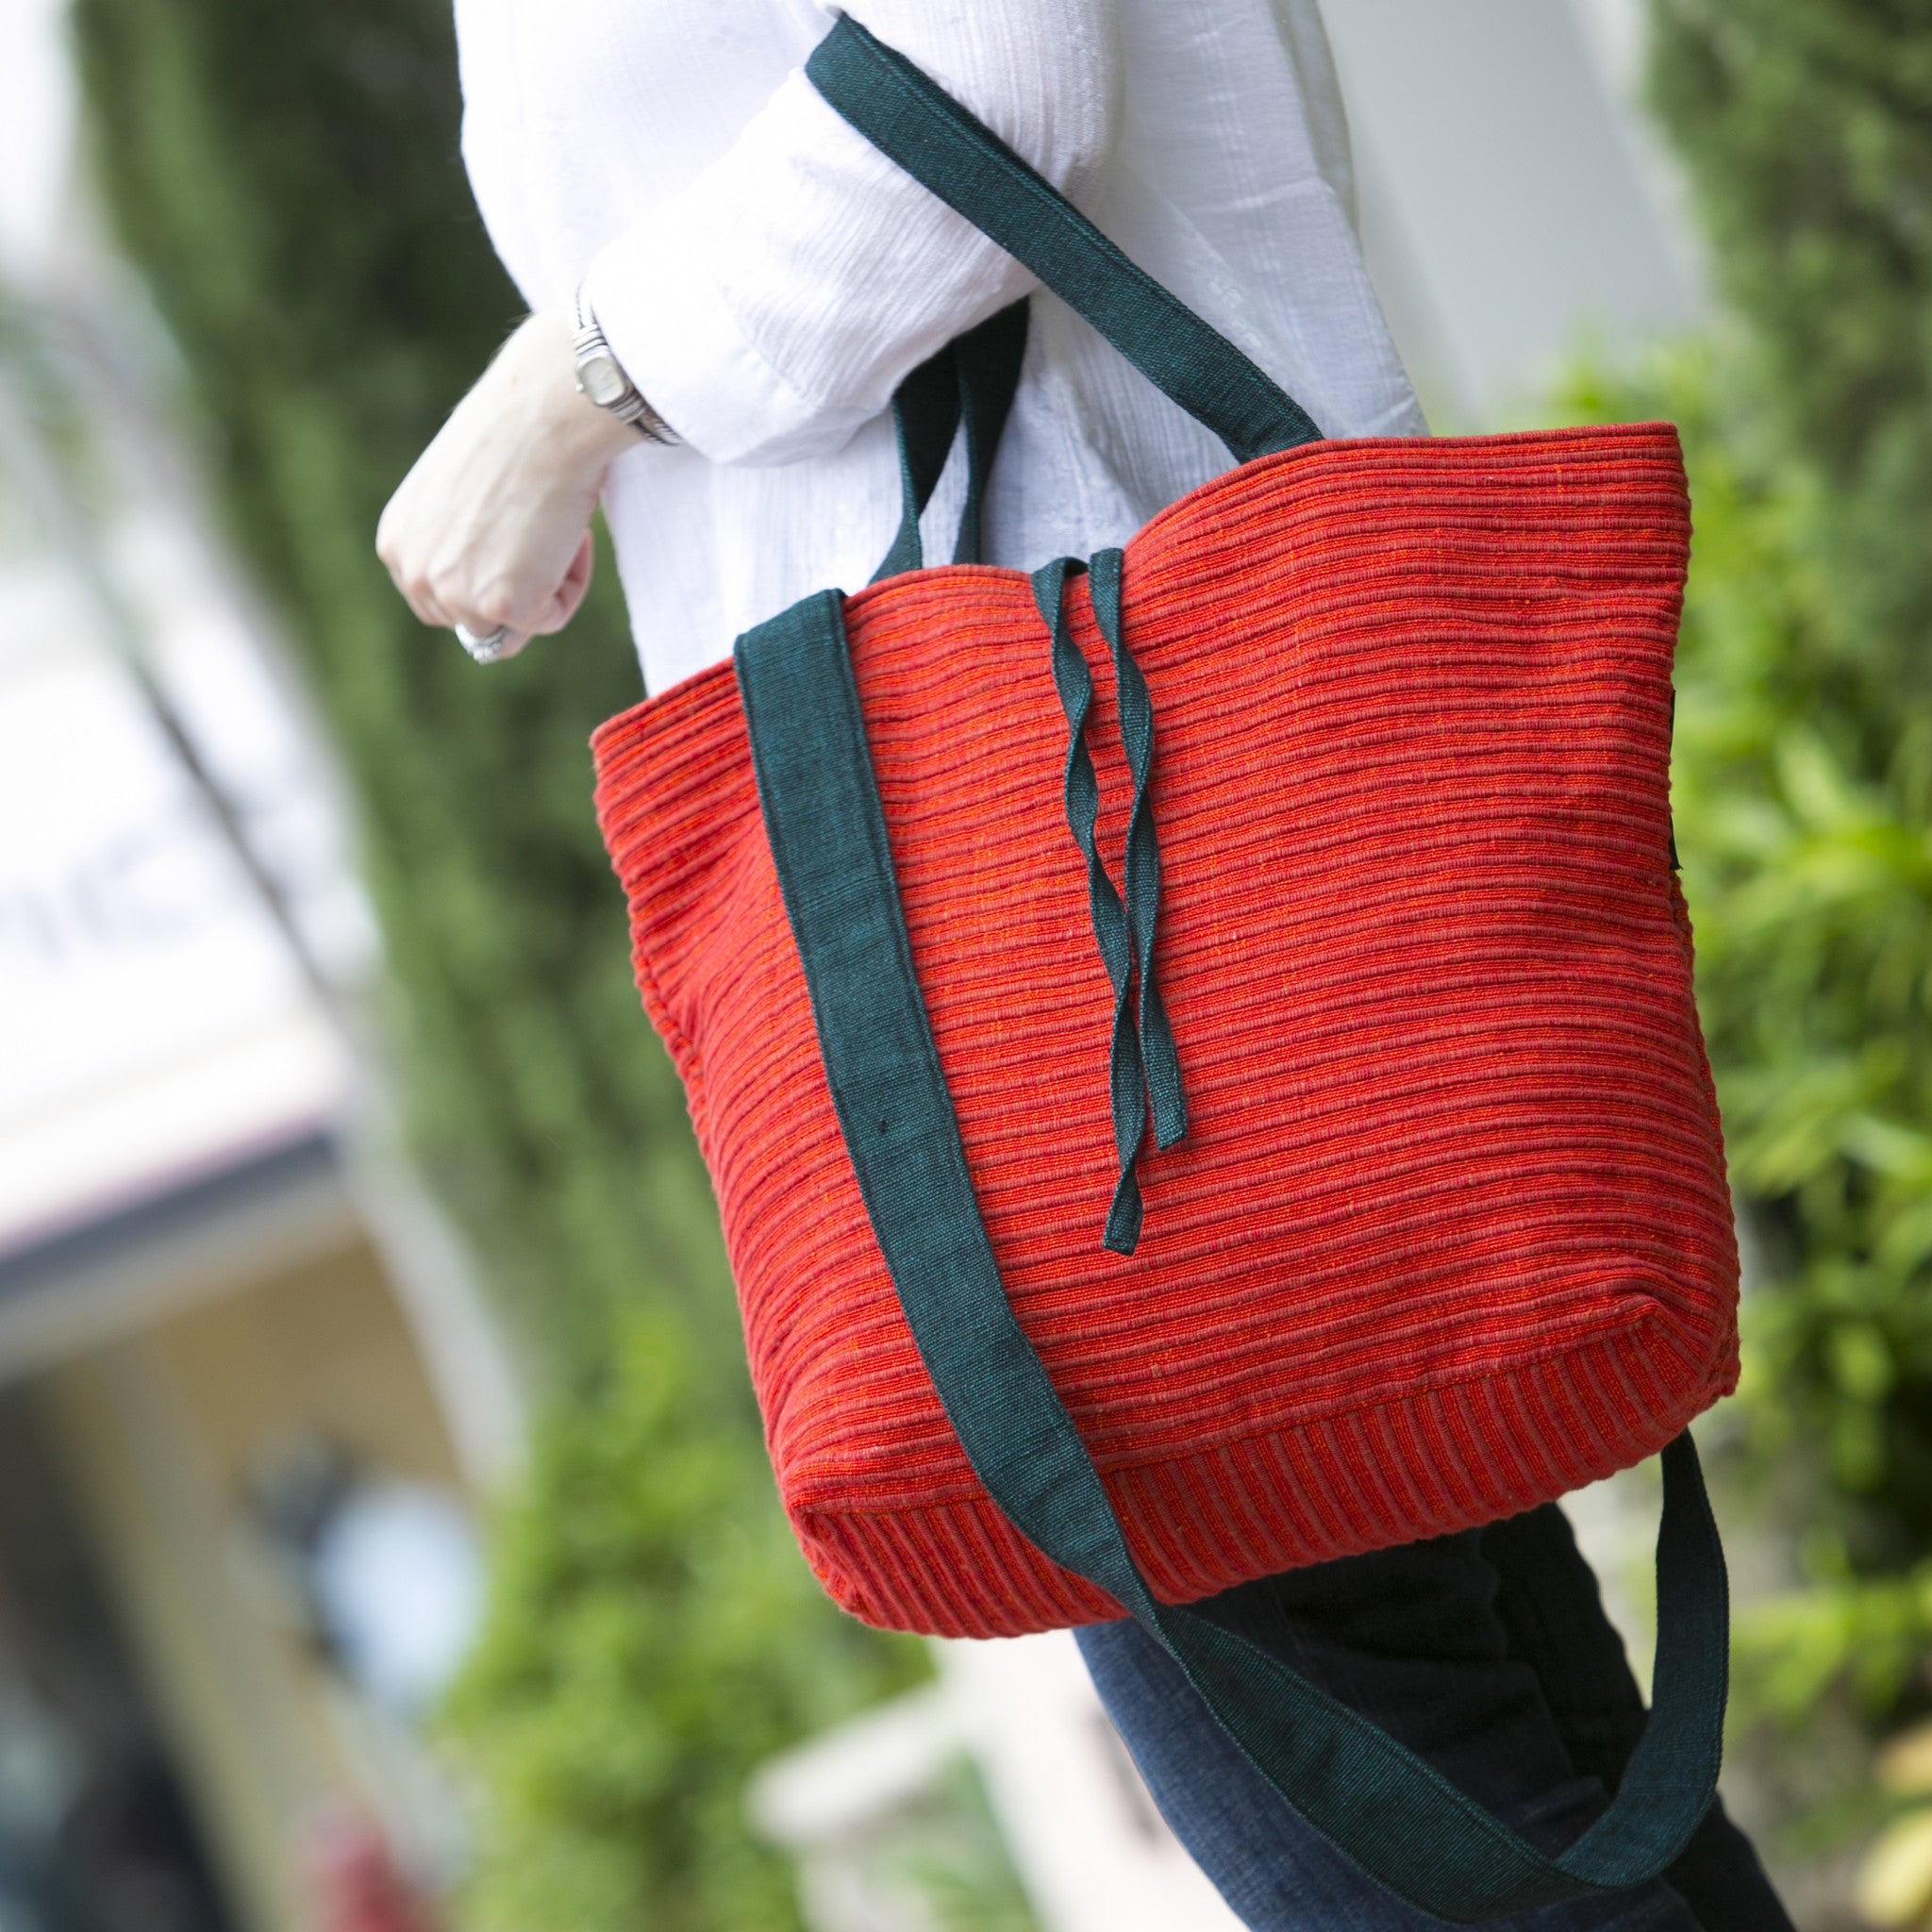 The Everyday Crossbody/Tote - Great for a day of shopping! (Hibiscus fabric shown)